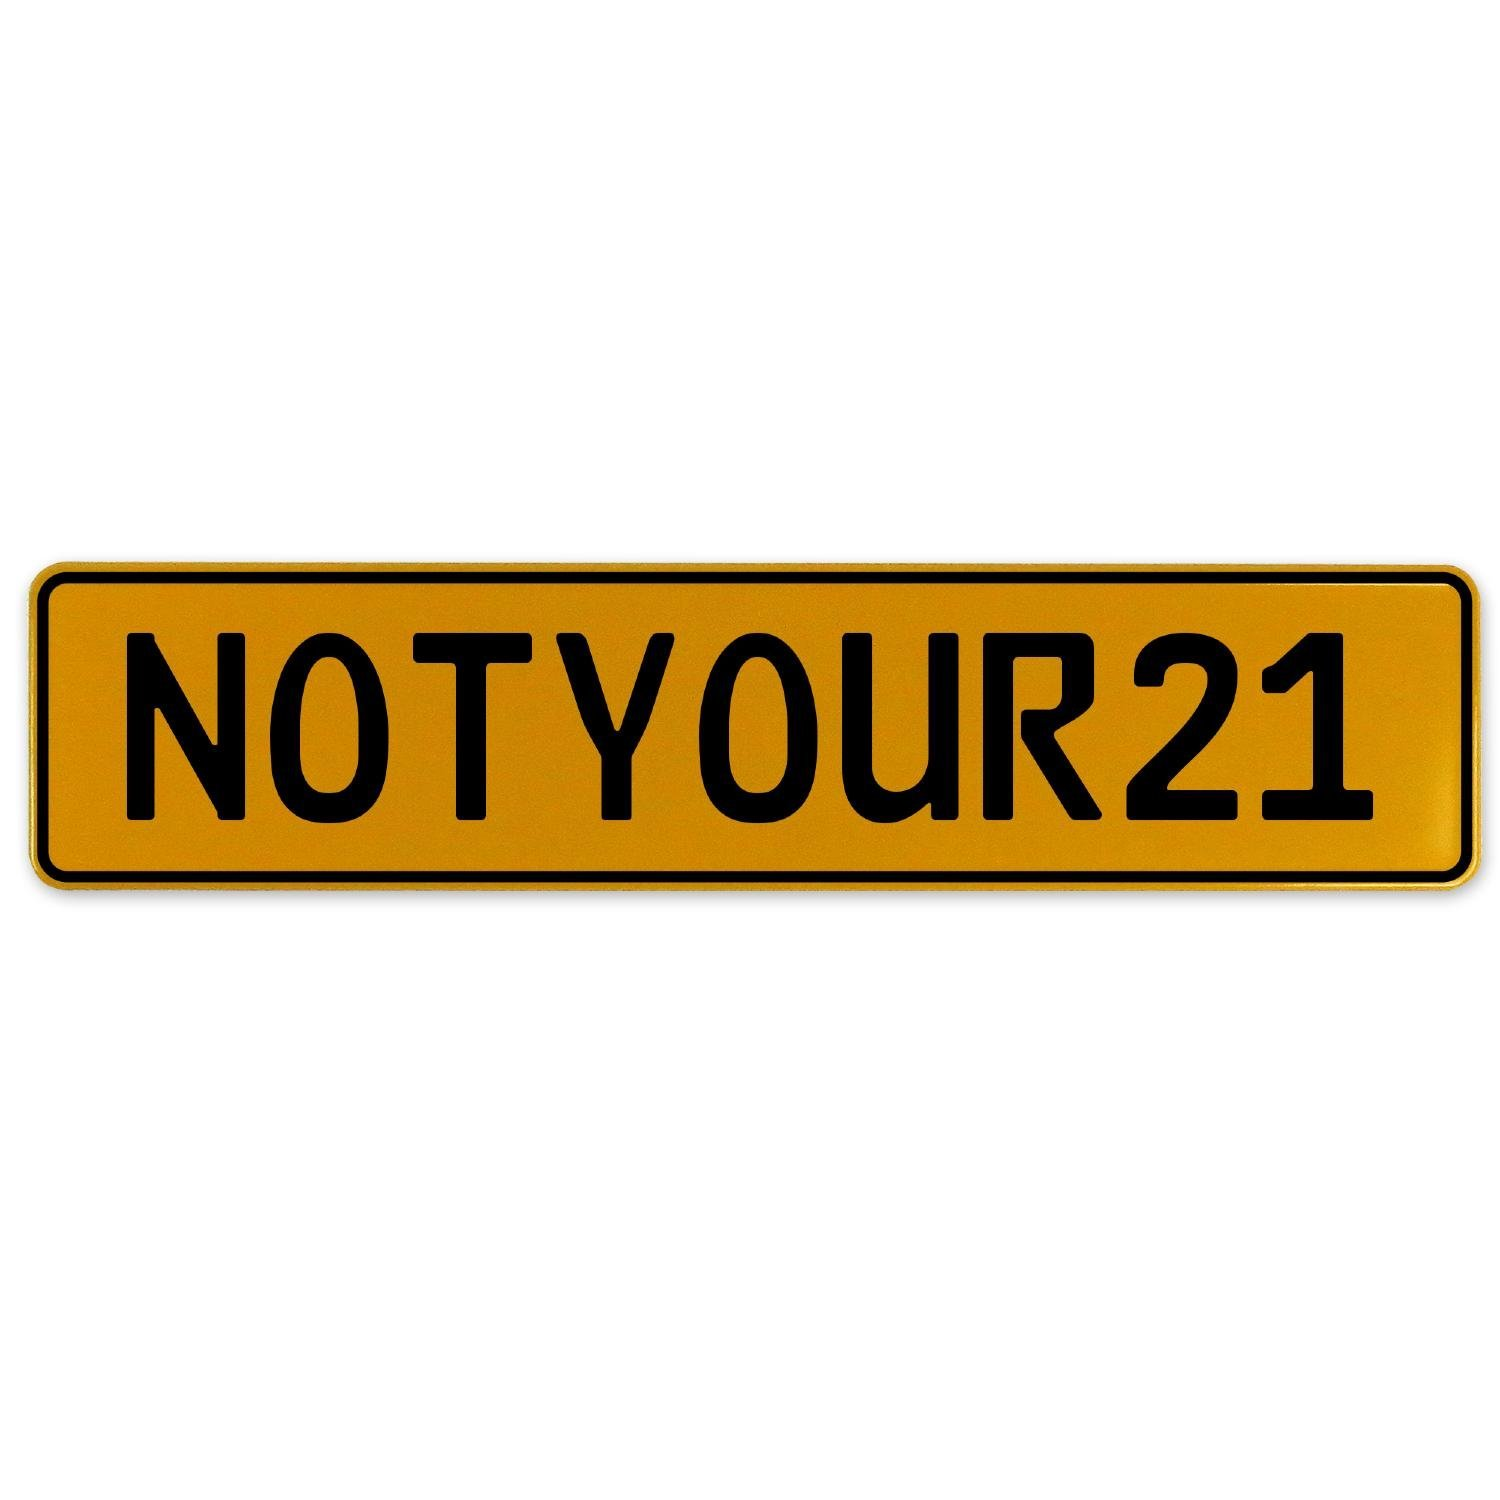 Vintage Parts 560459 NOTYOUR21 Yellow Stamped Aluminum European Plate